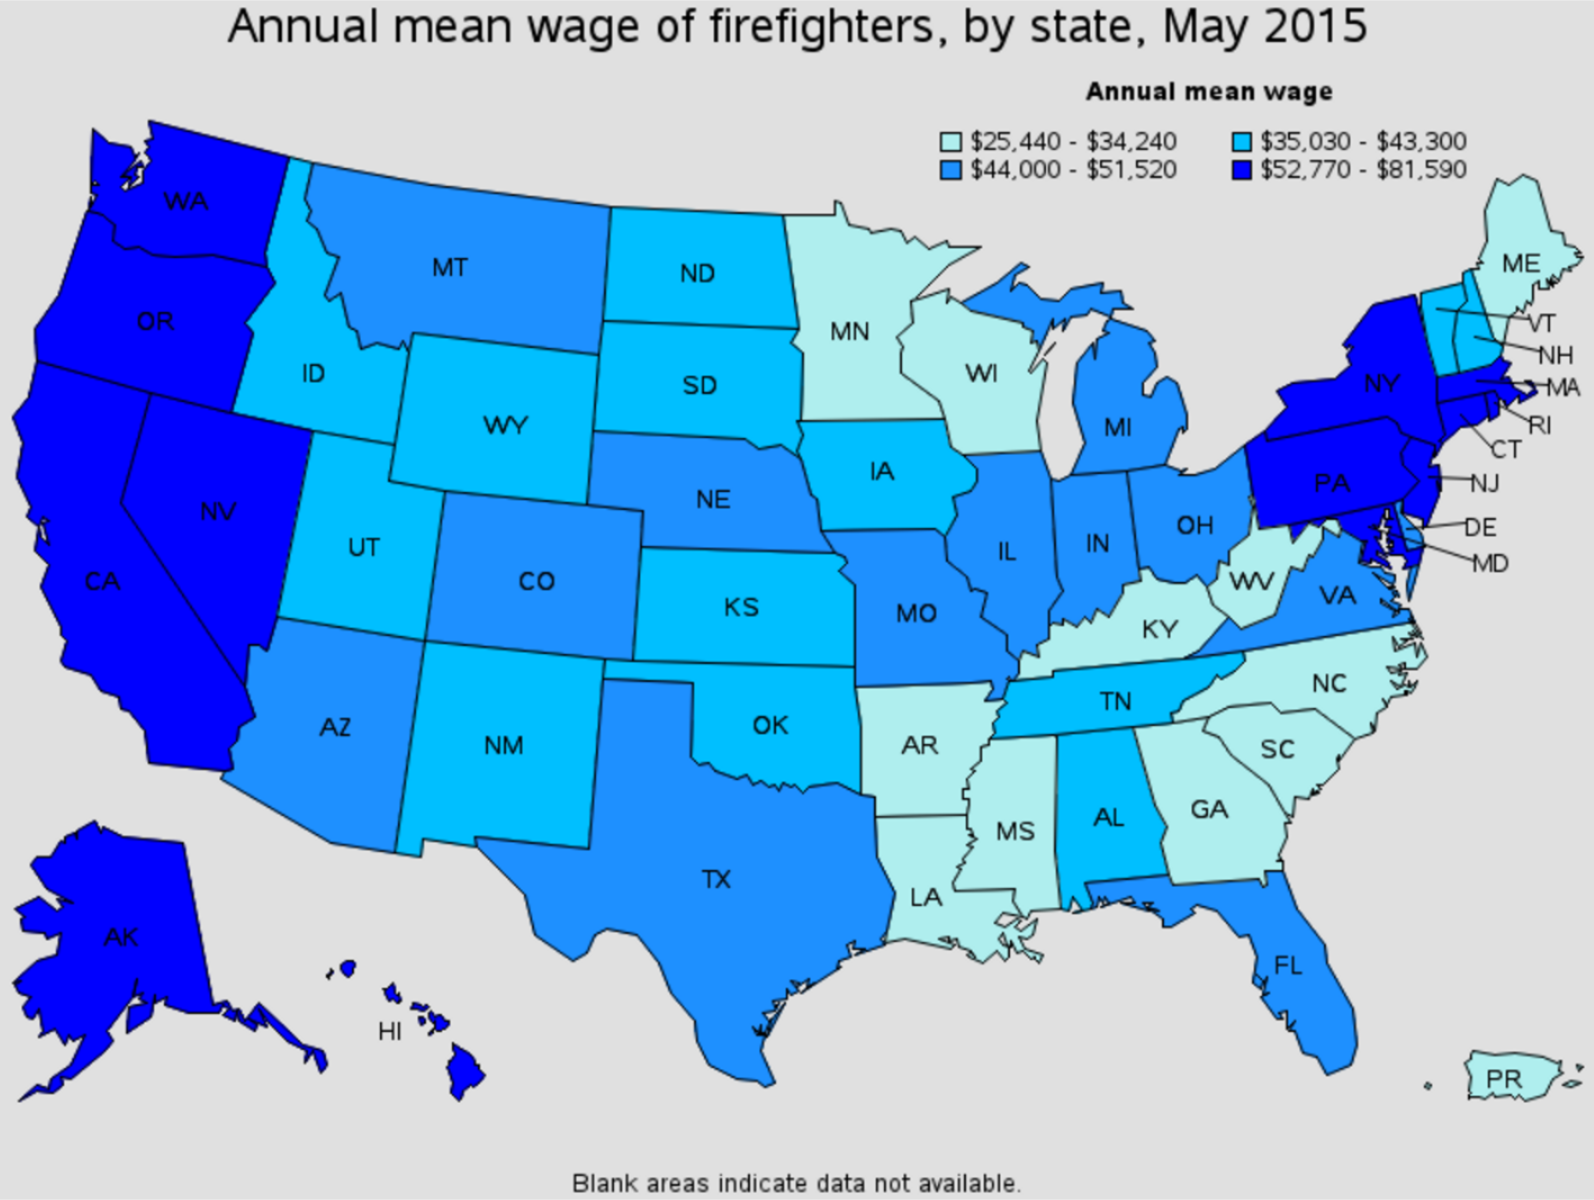 firefighter average salary by state Wonewoc Wisconsin